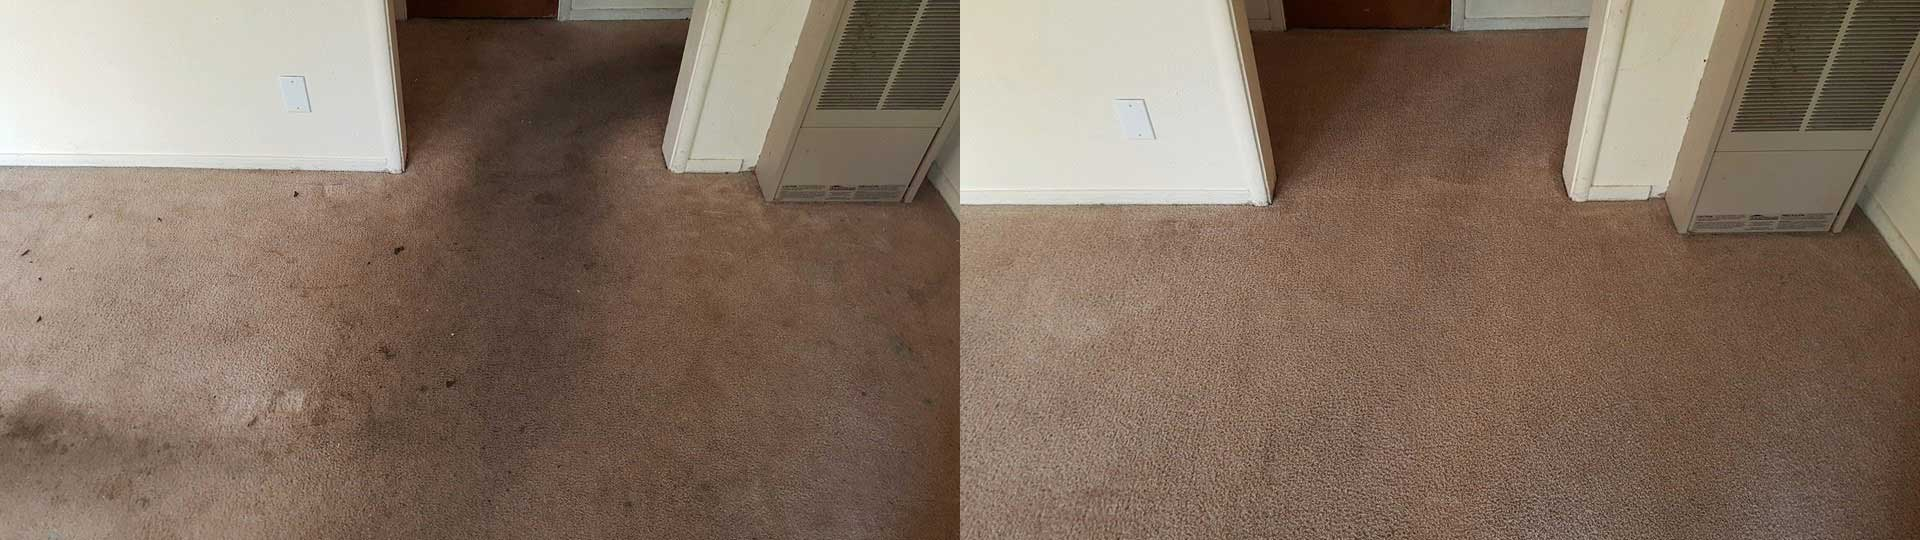 carpet cleaning Antelope CA